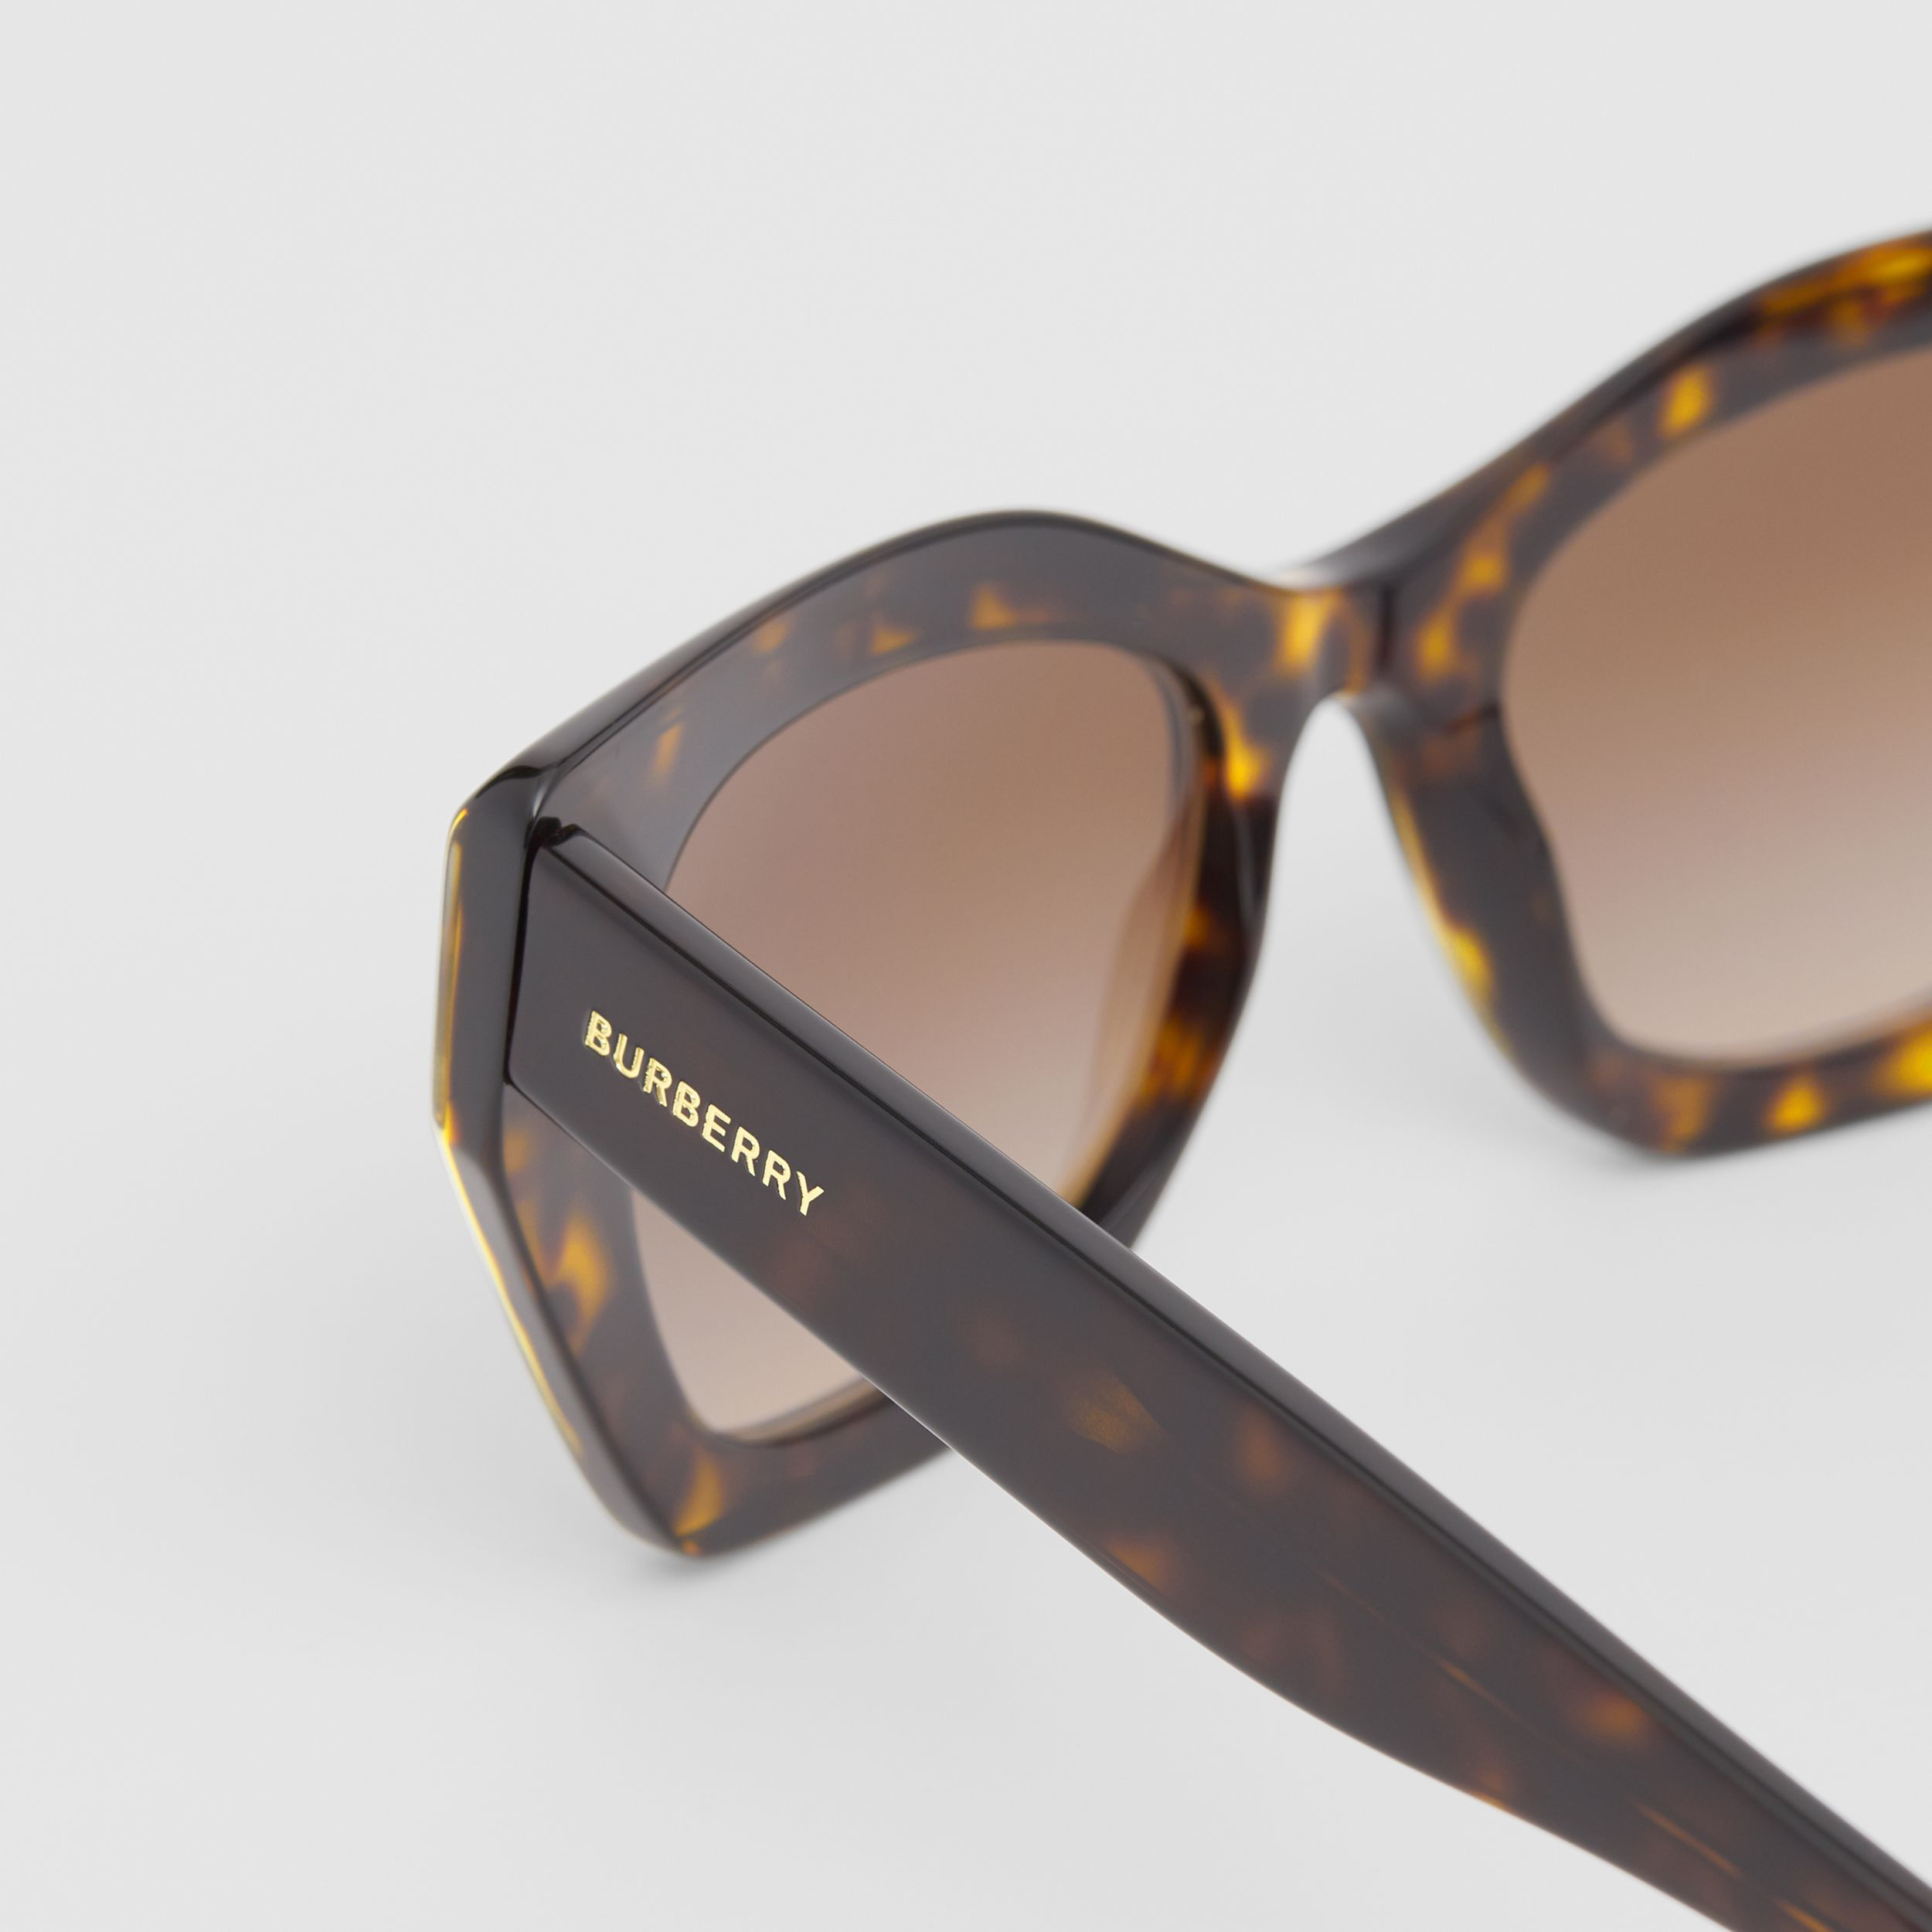 Butterfly Frame Sunglasses in Tortoiseshell - Women | Burberry - 2